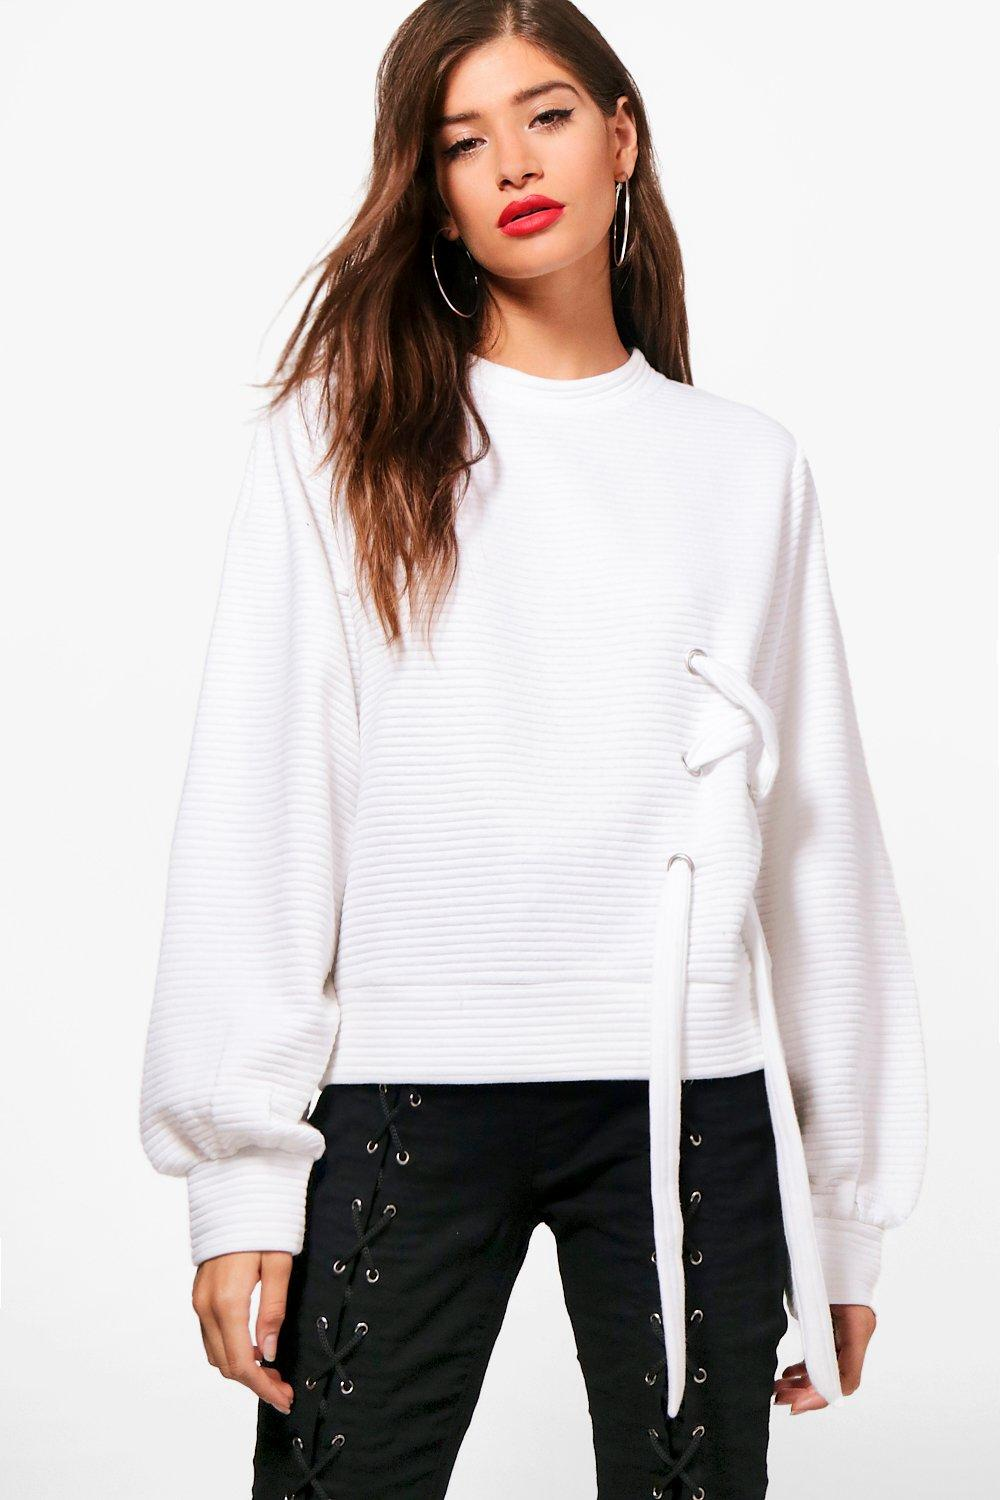 chelsea eyelet detail sweater top | boohoo